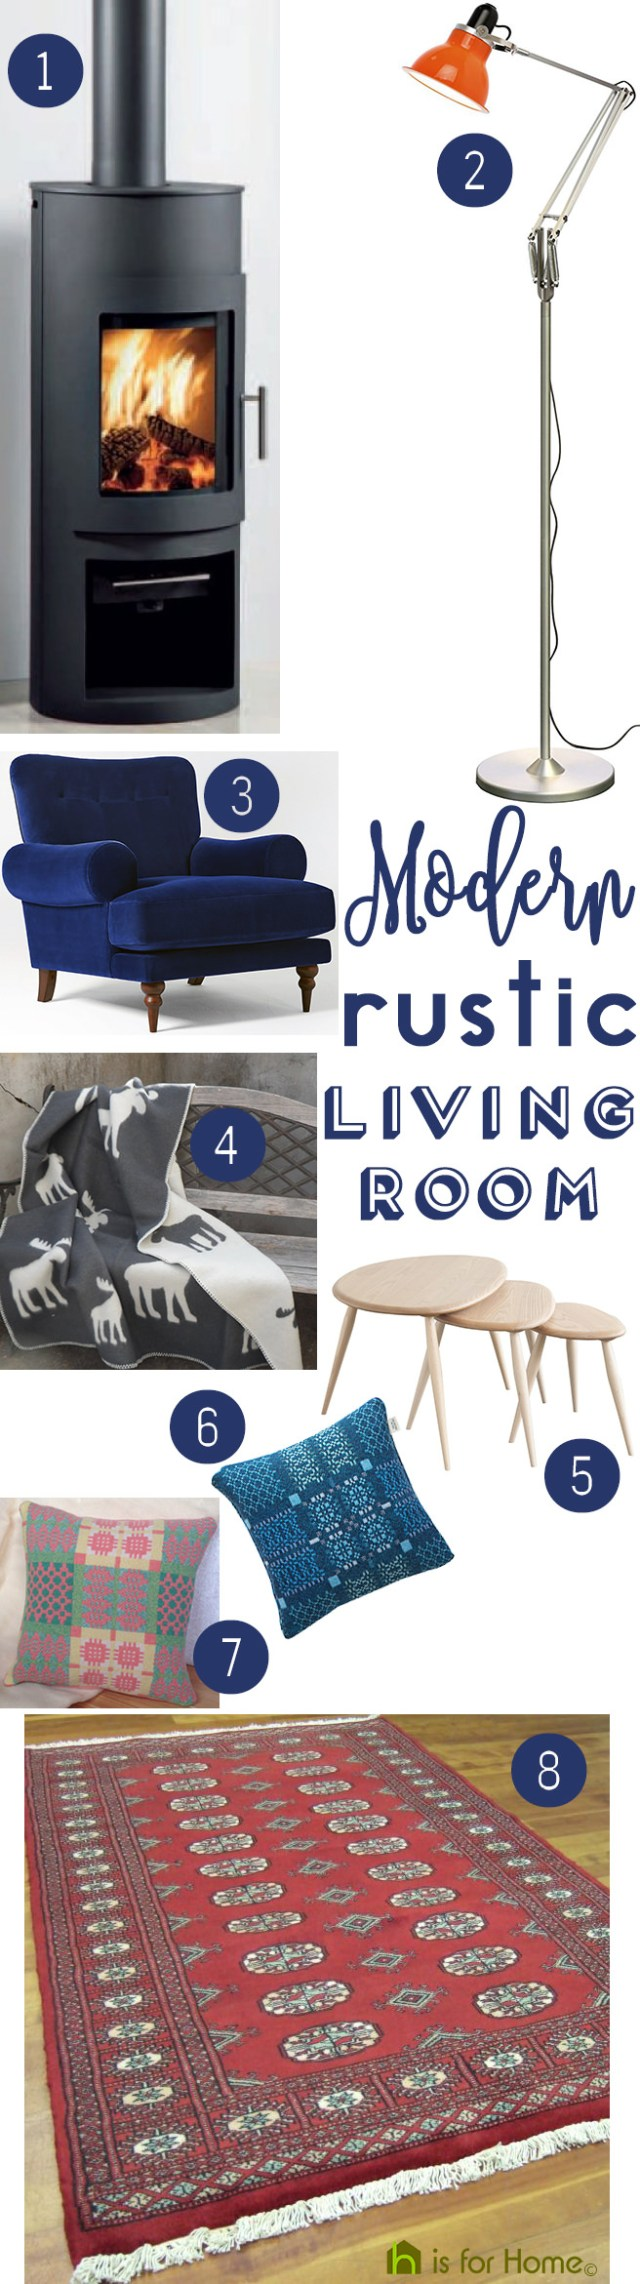 Get their Look: Modern rustic living room | H is for Home